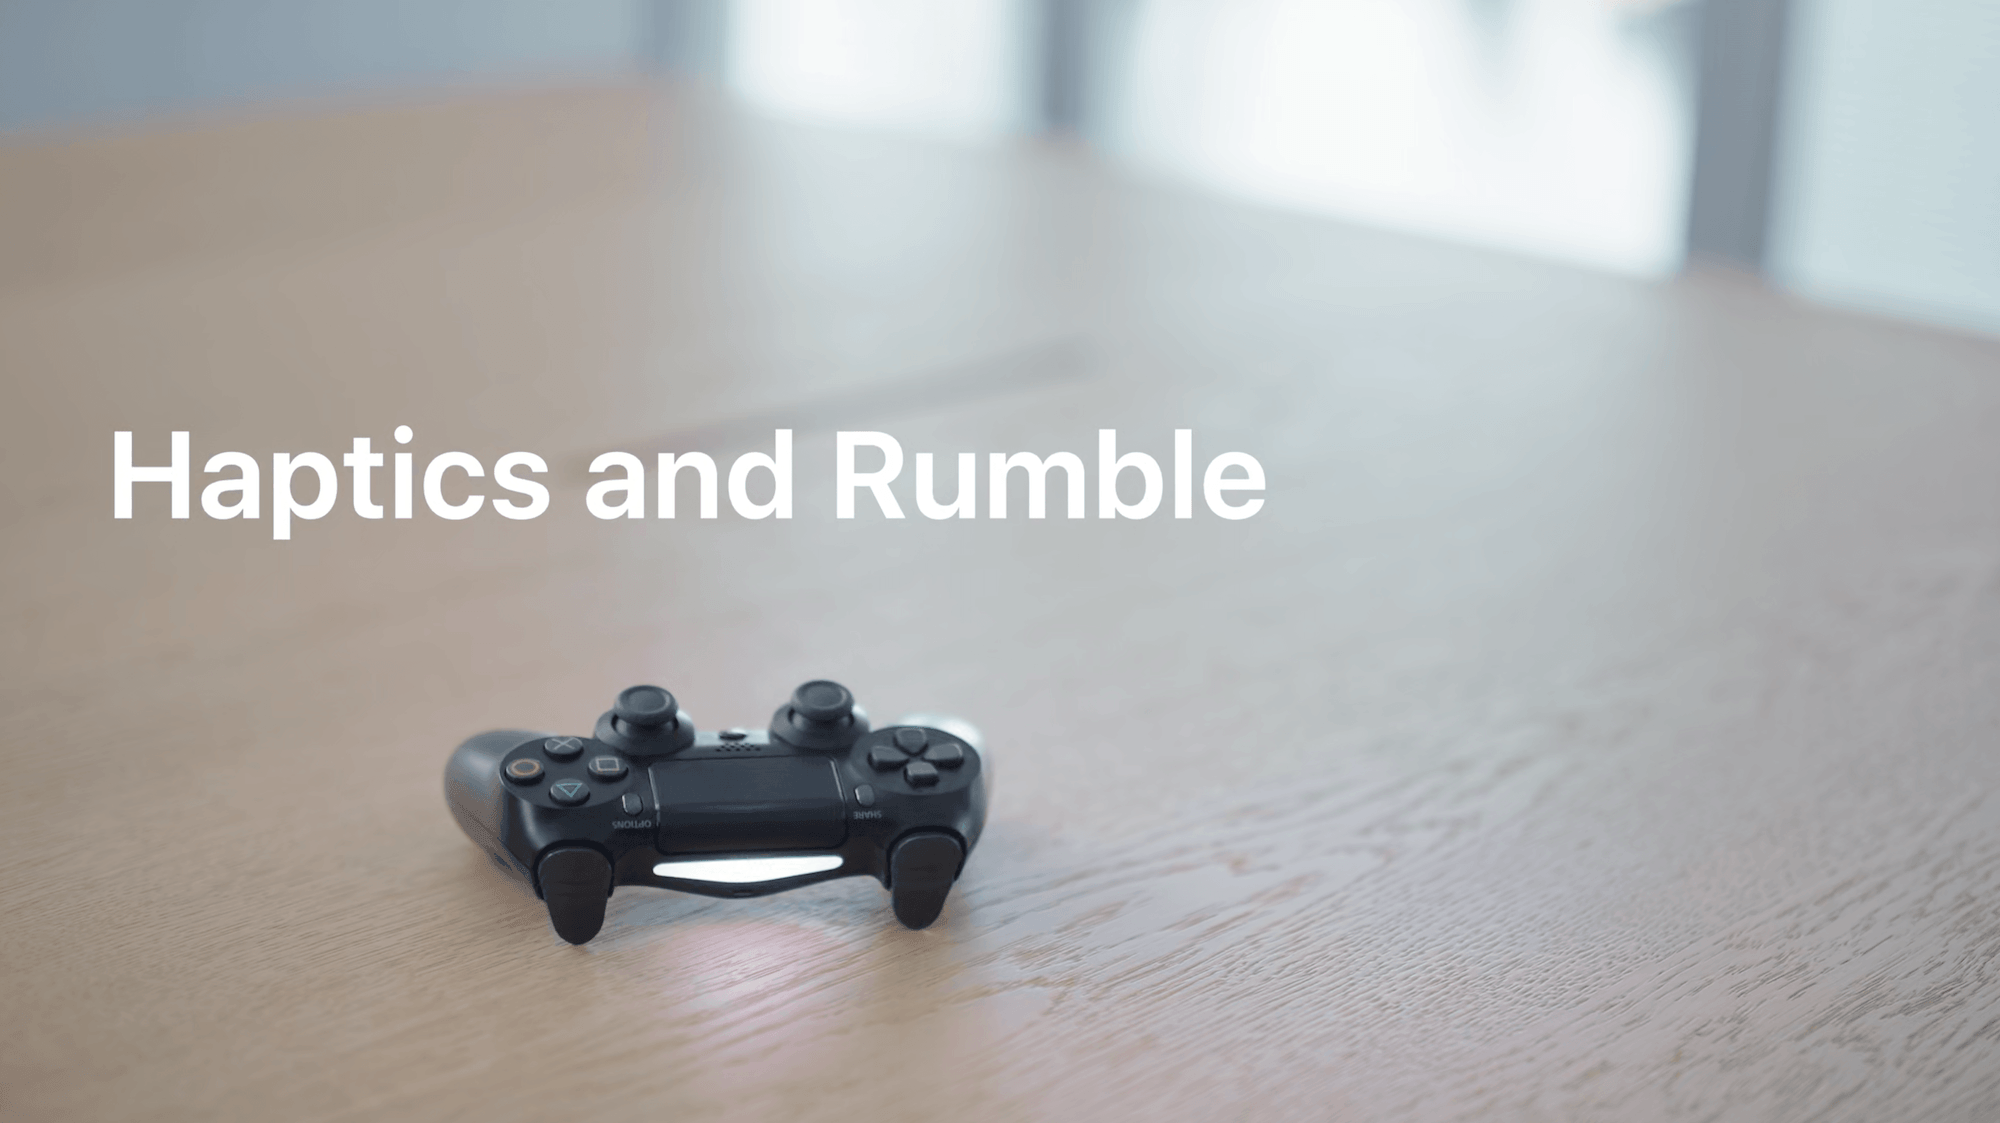 Haptics, rumble, and controller-specific features are now supported on Apple's platforms. Source: Apple.